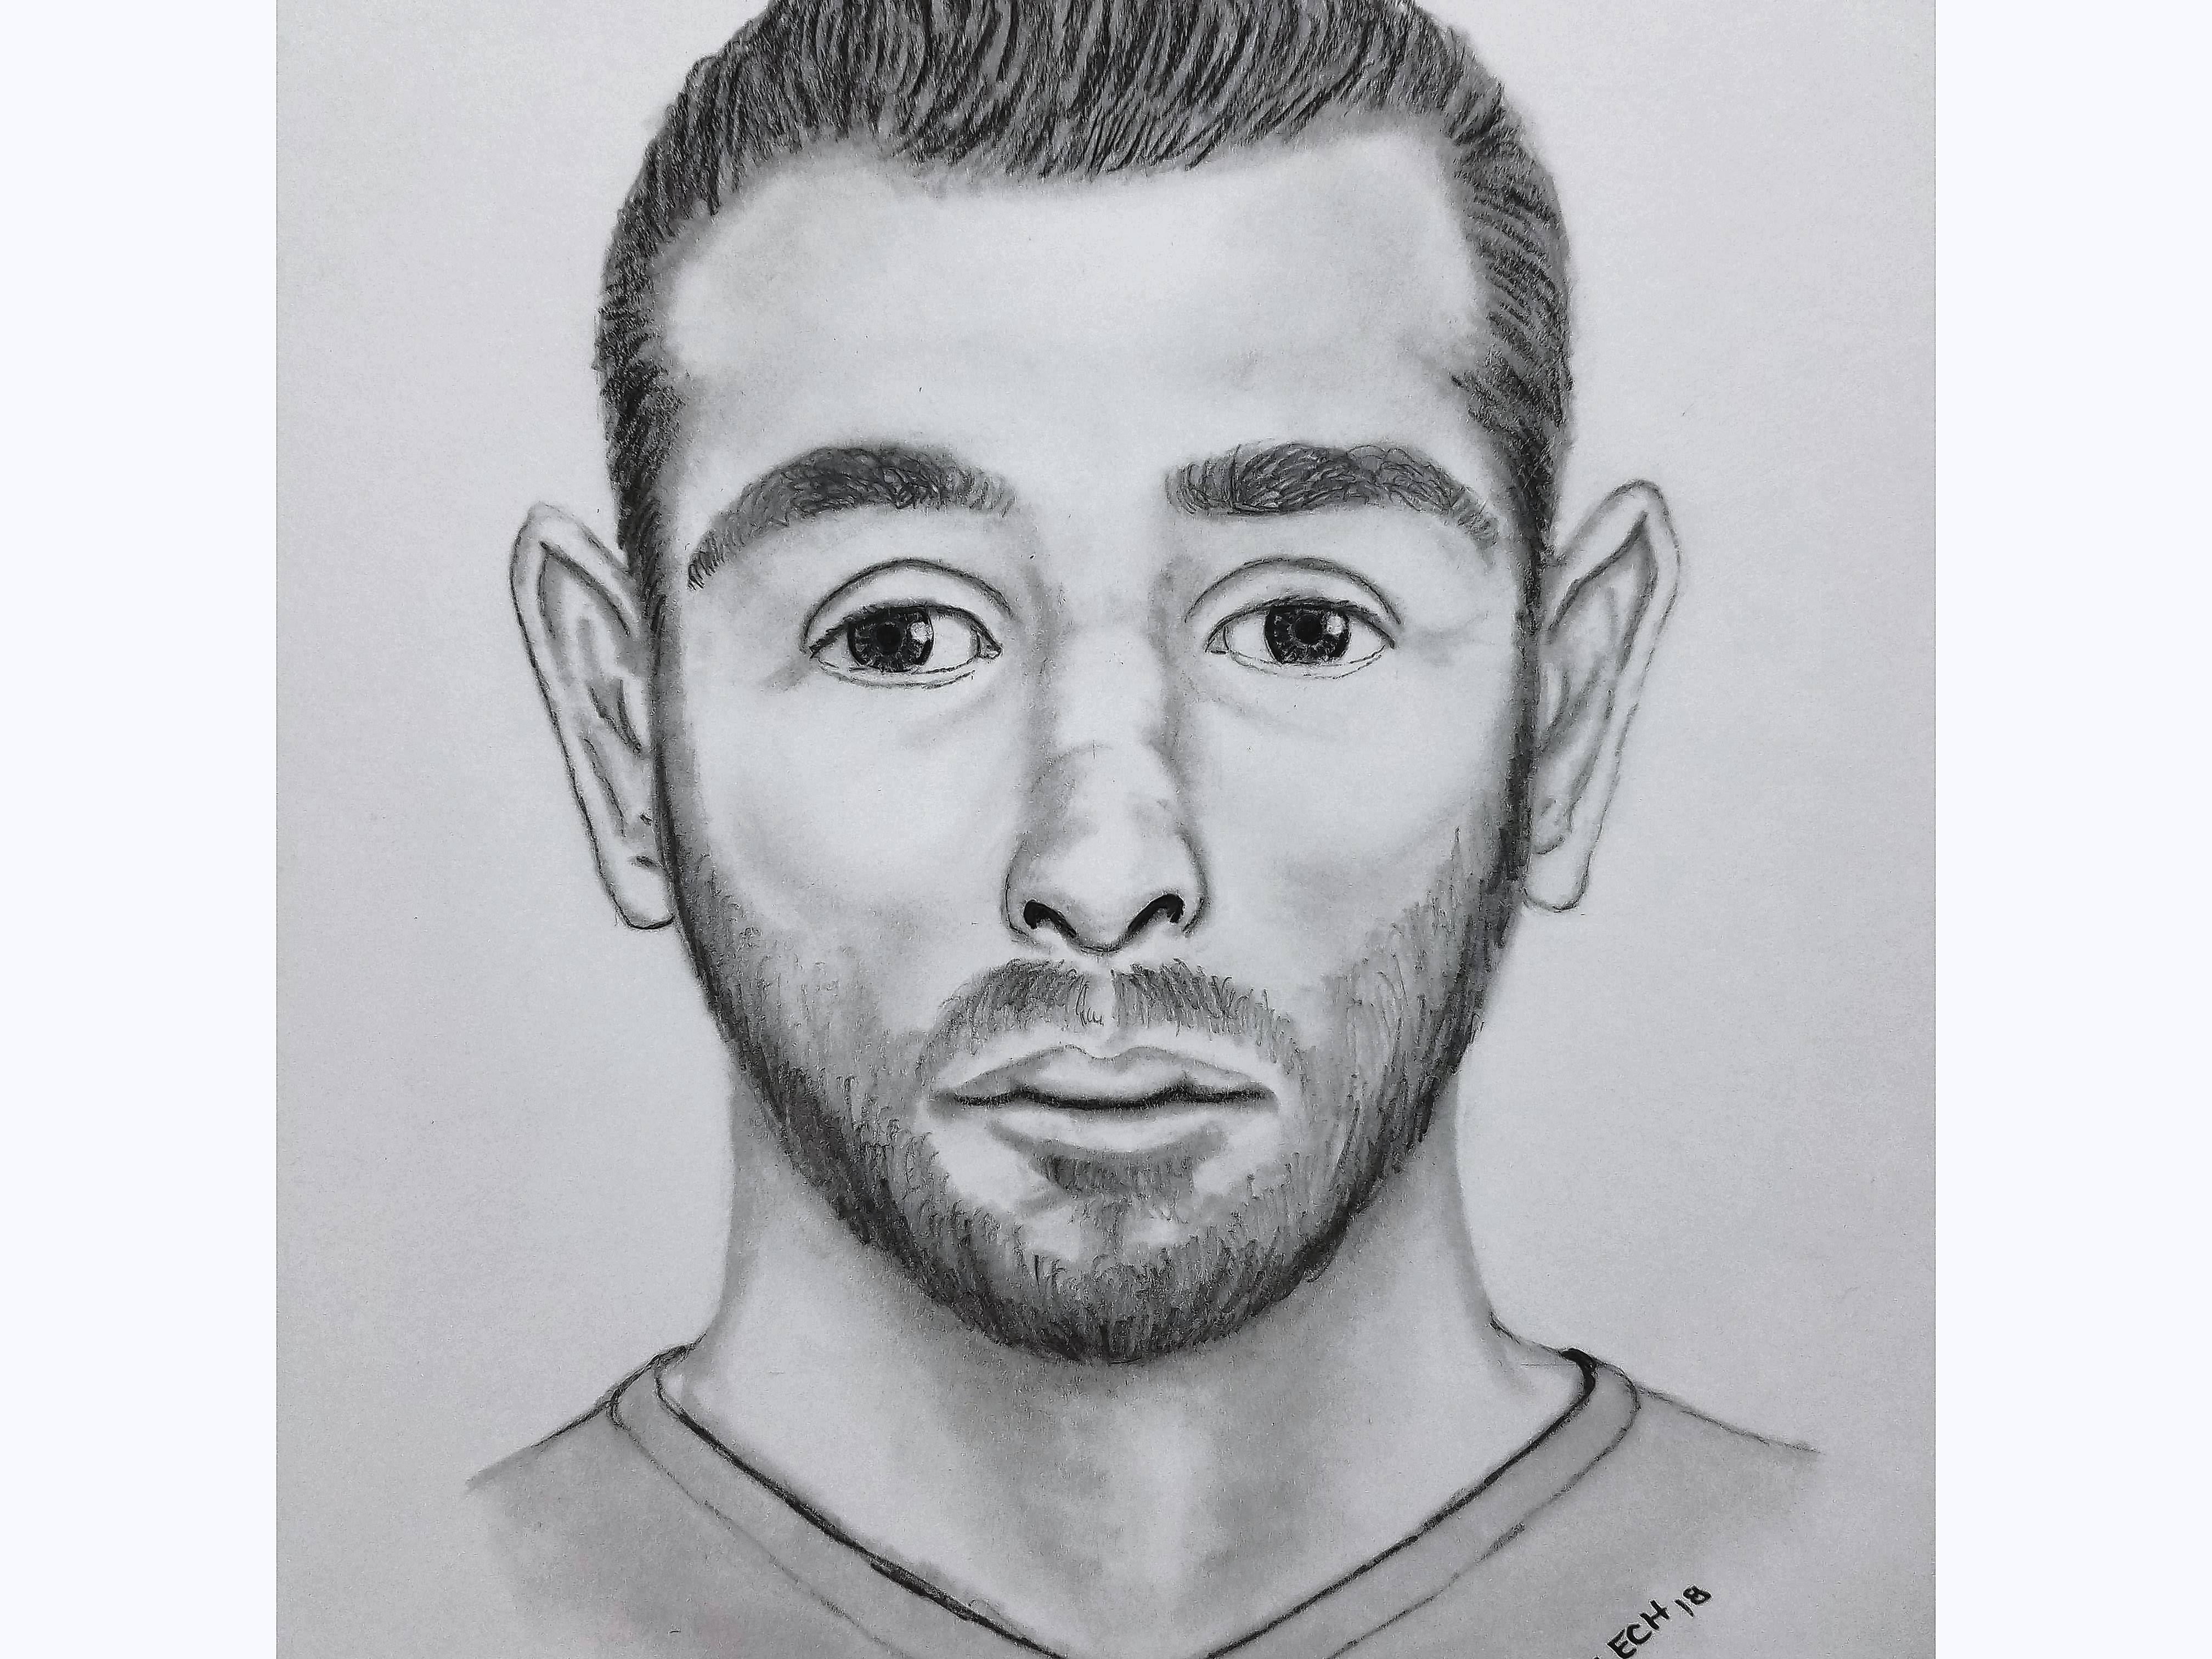 Mount Prospect police say this man attempted to lure a 16-year-old girl into his car last week on the 300 block of North William Street.